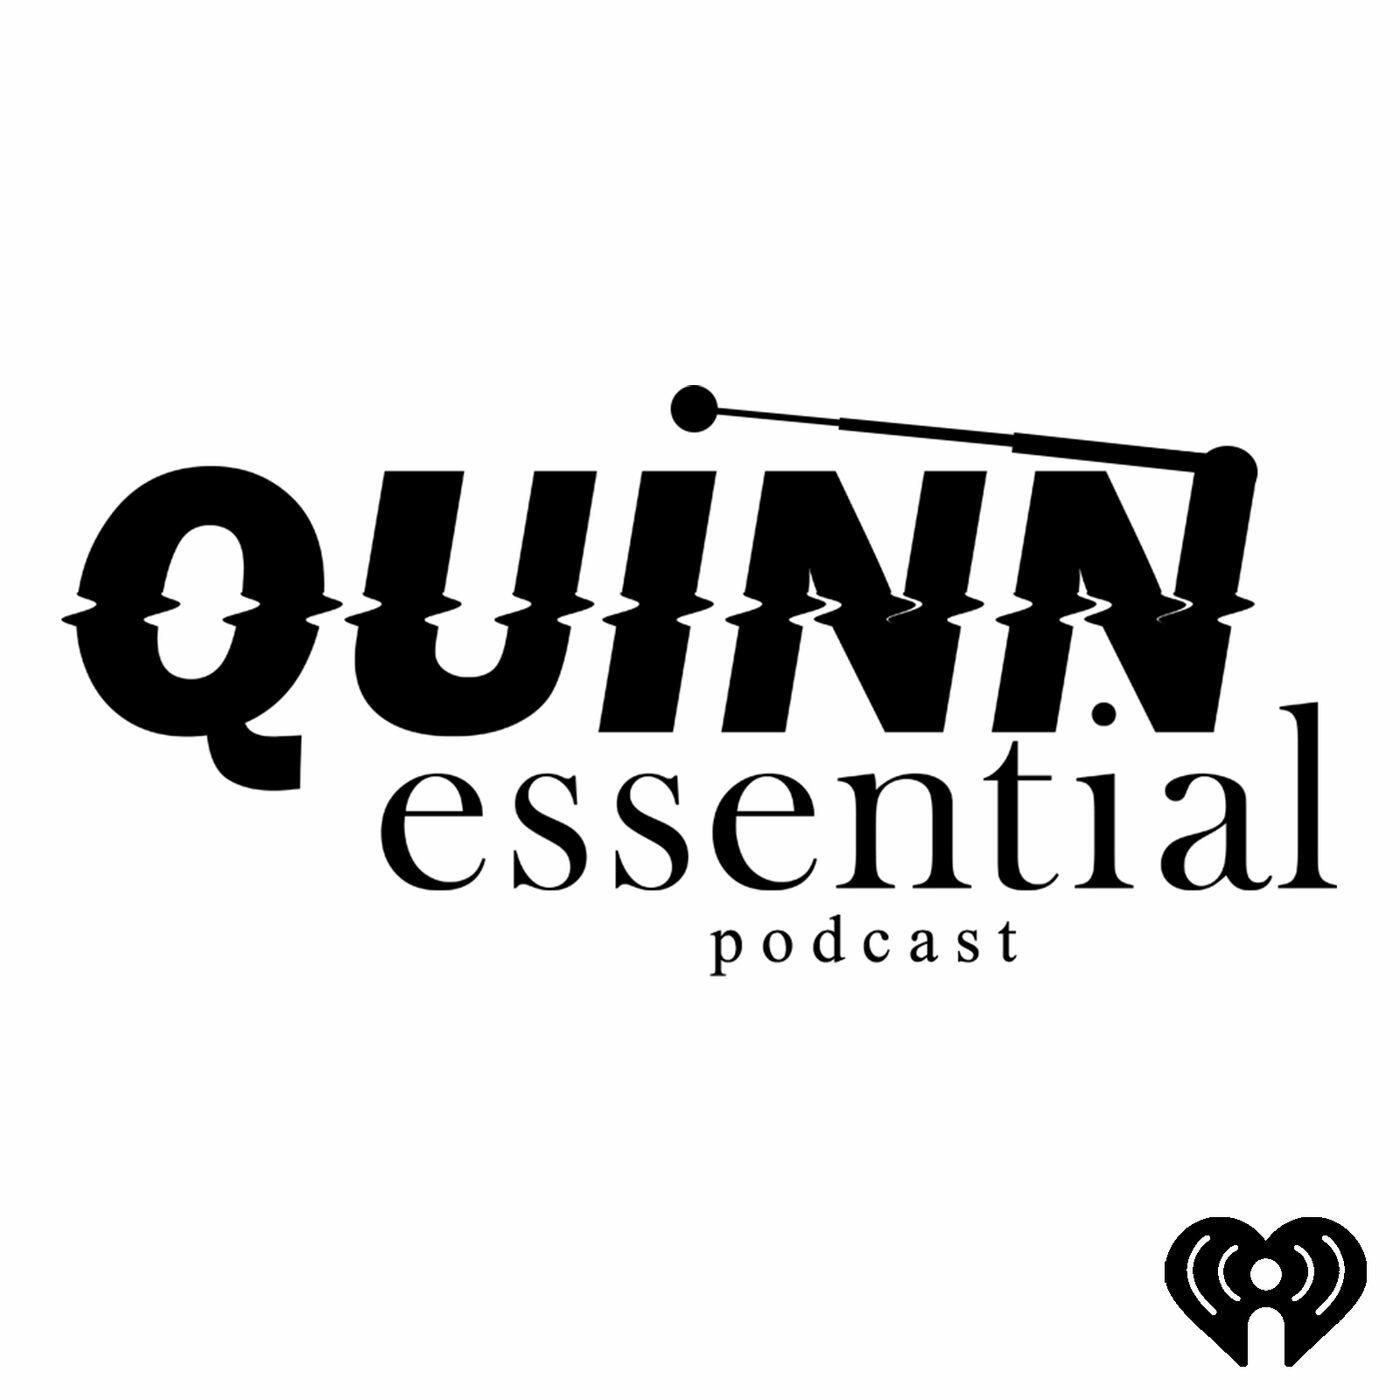 Quinnessential Podcast